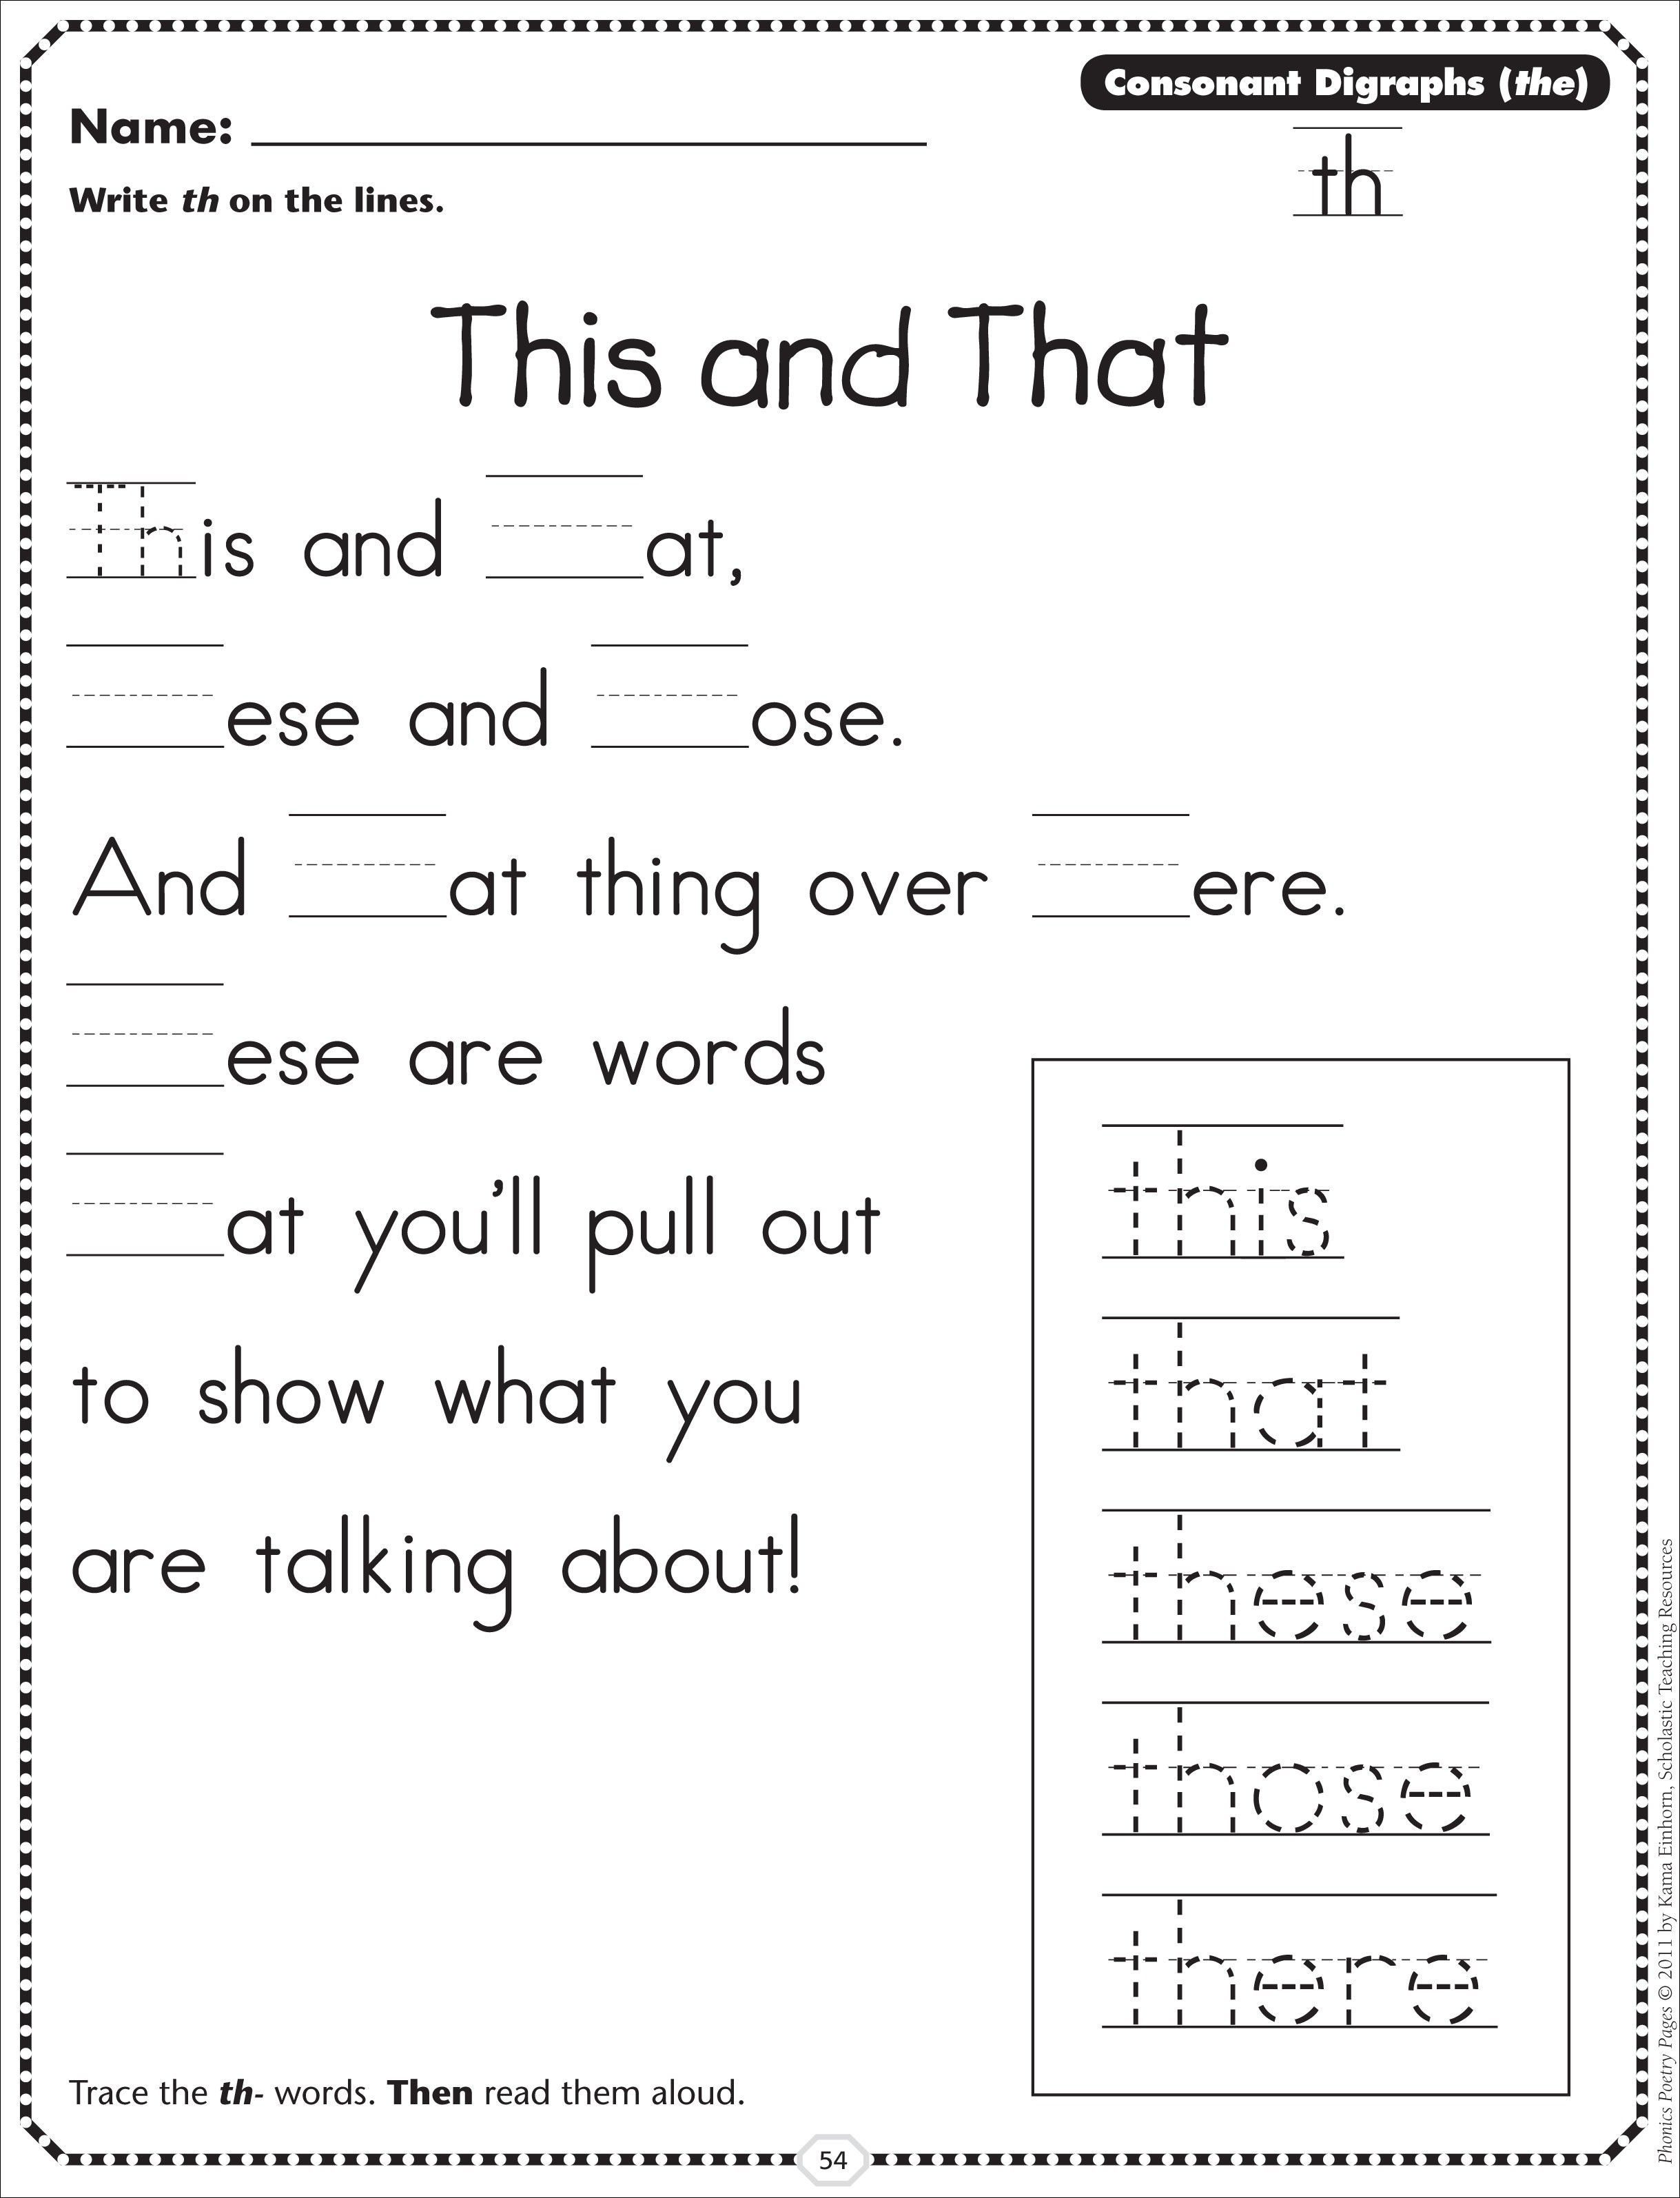 worksheet Th Digraph Worksheets sh poem digraph google search education literacy pinterest th worksheets and scholastic this that consonant digraphs phonics poetry page